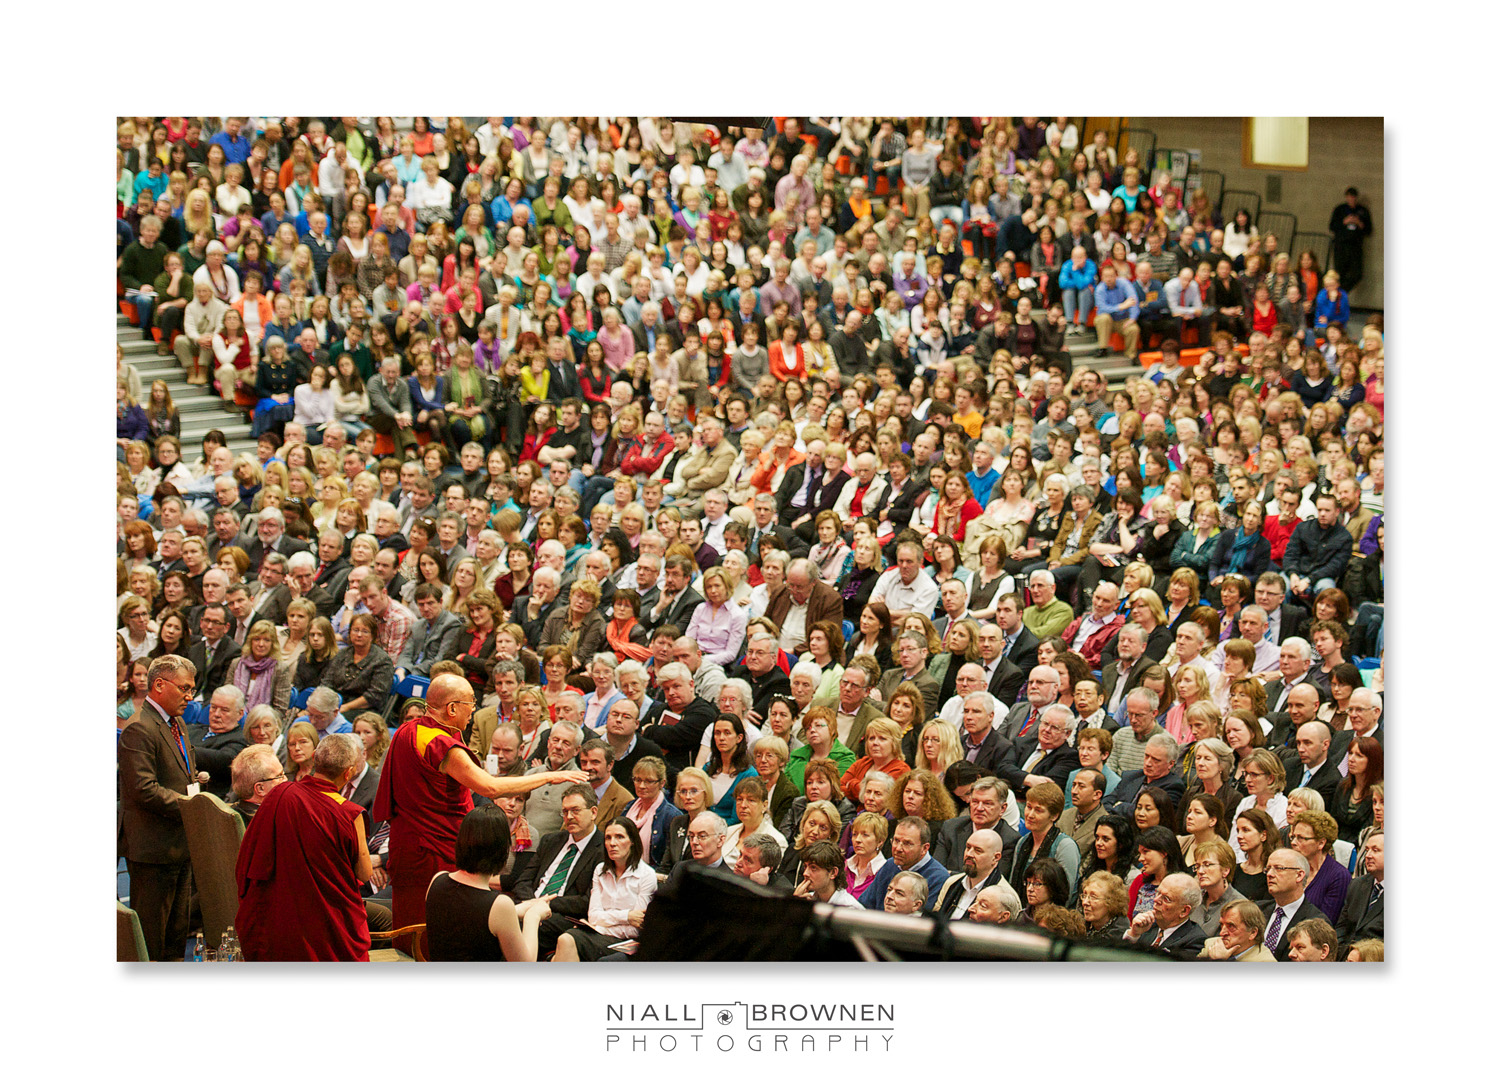 The Dalai Lama spoke about The Power of Forgiveness for about 90 mins, and stayed standing the entire time. If memory serves me right, he was 75 years old at the time.